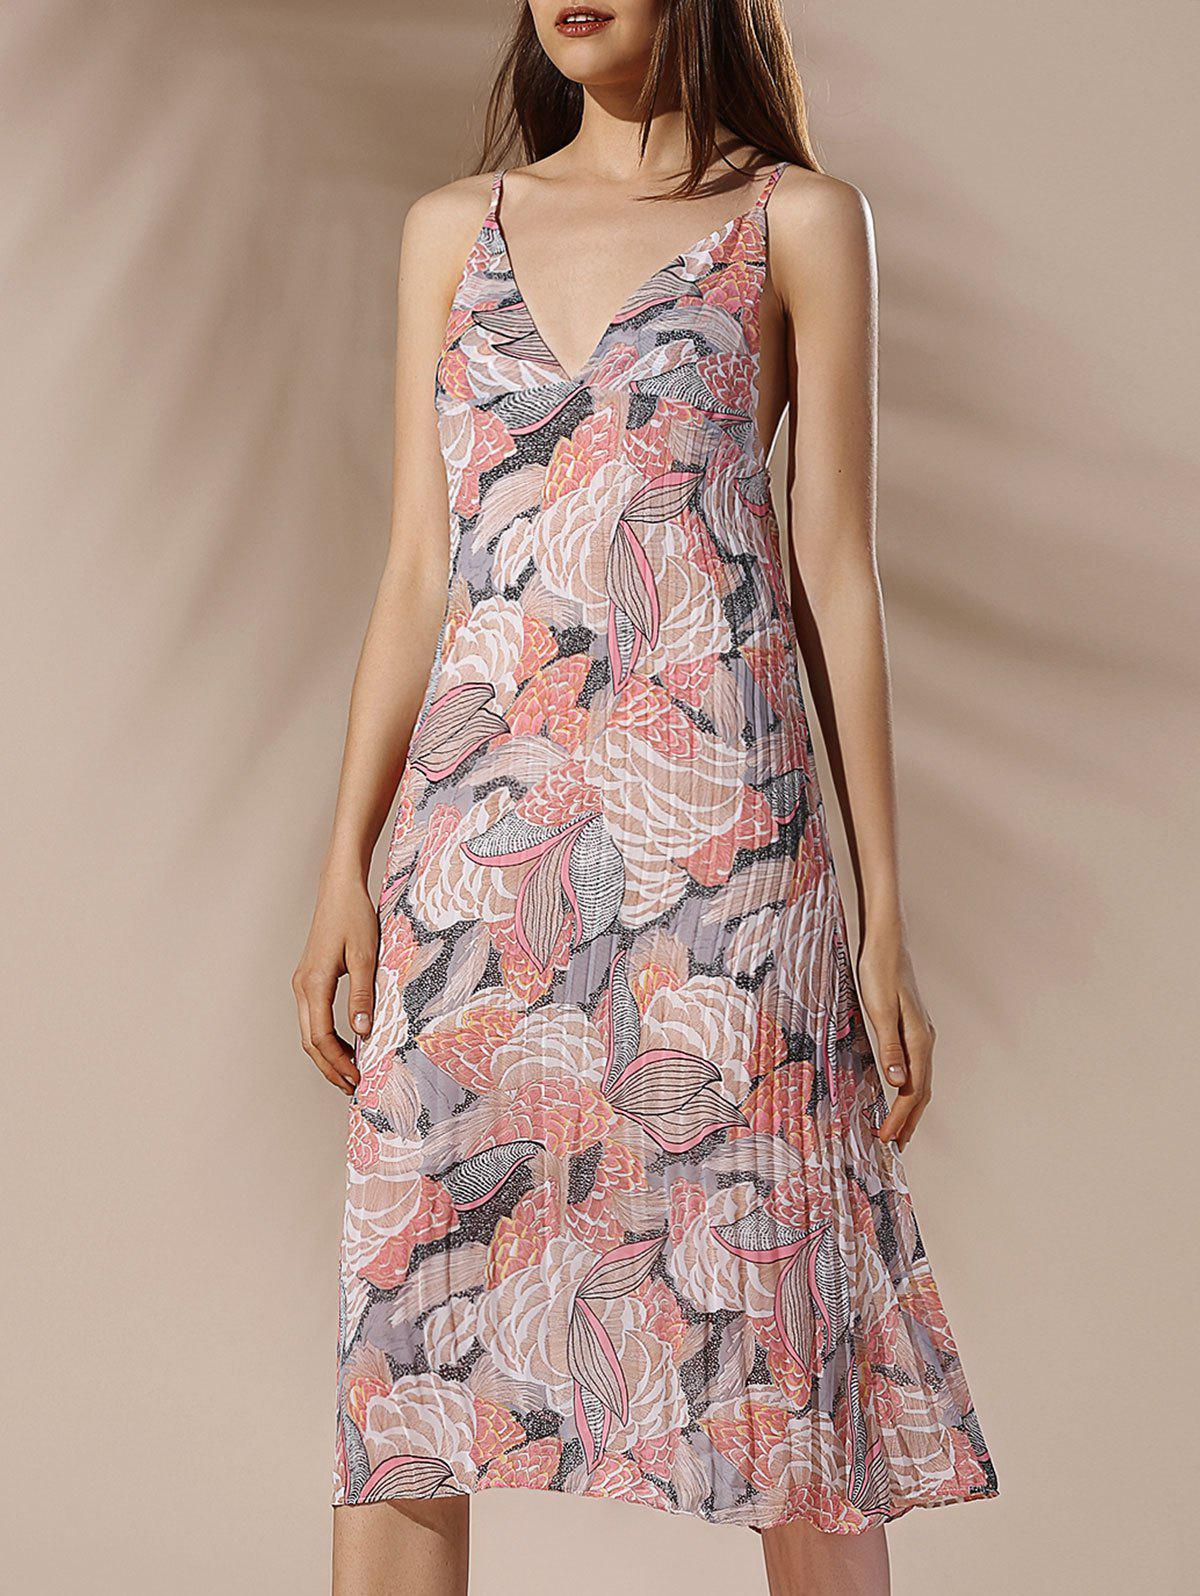 Floral Pleated Summer Dress - COLORMIX L